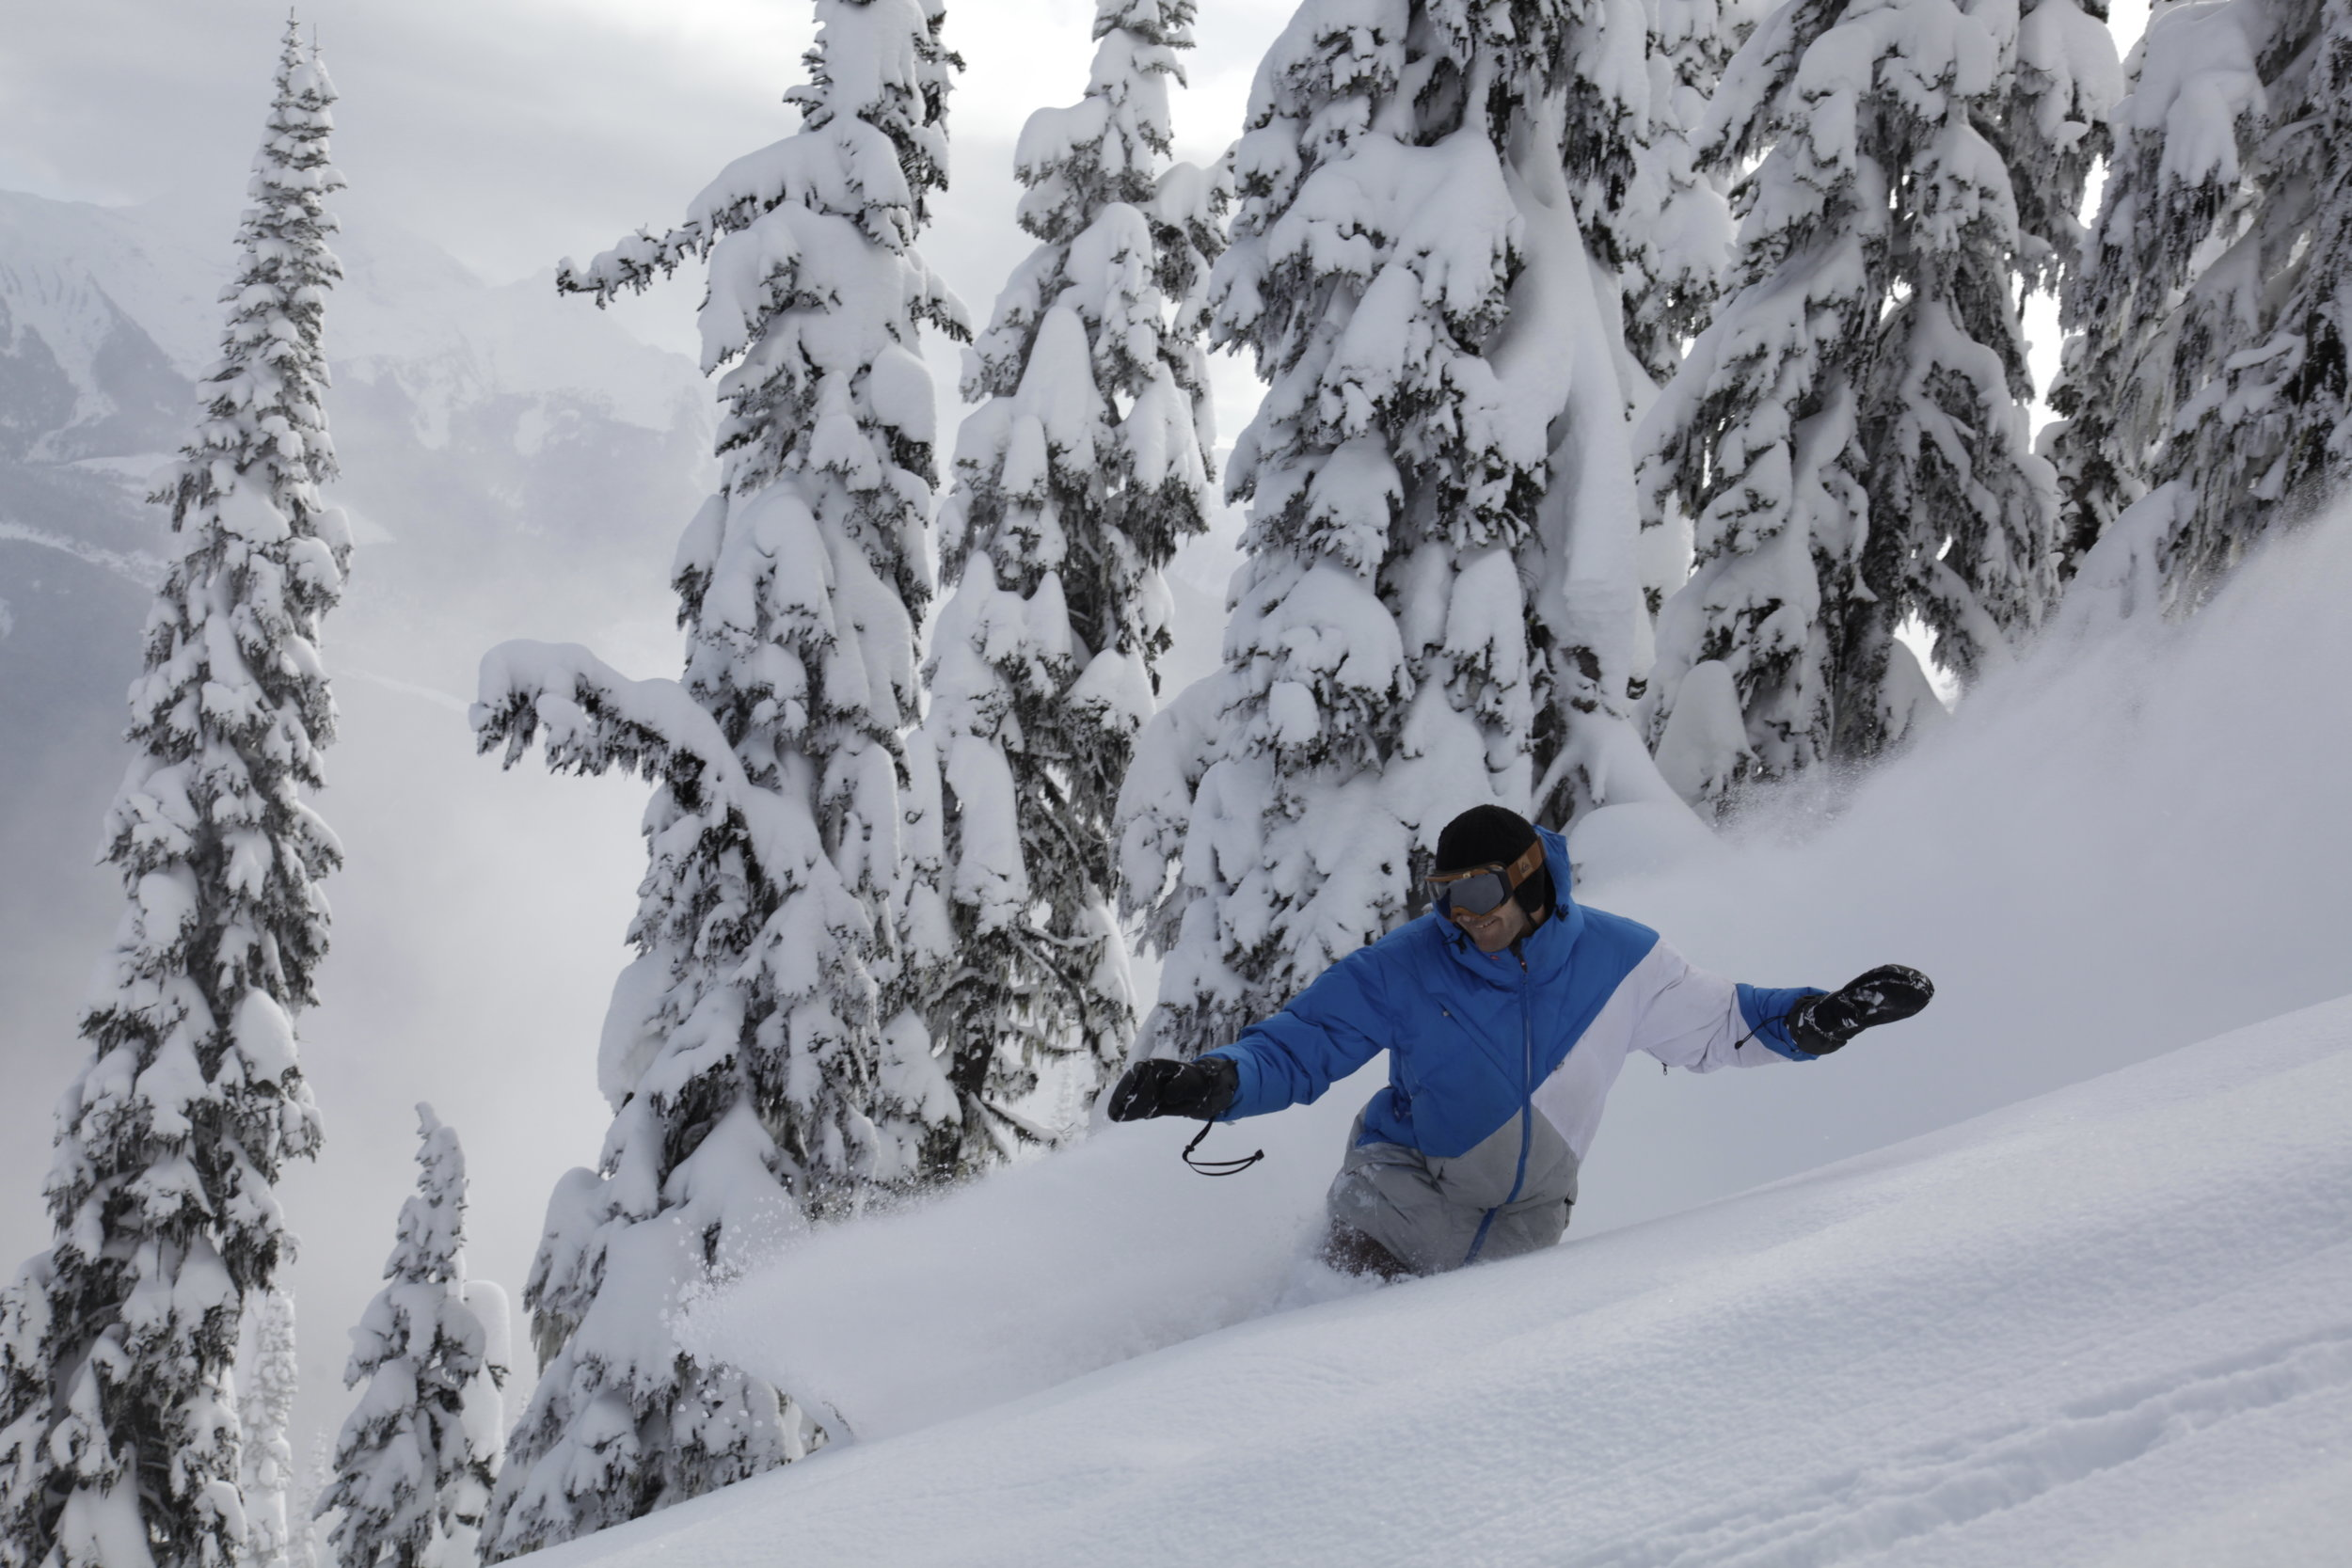 Eagle Pass Heli Skiing, BC, Canada. Rider: Simon Favier CHASEWINTER/SPENCER FRANCEY